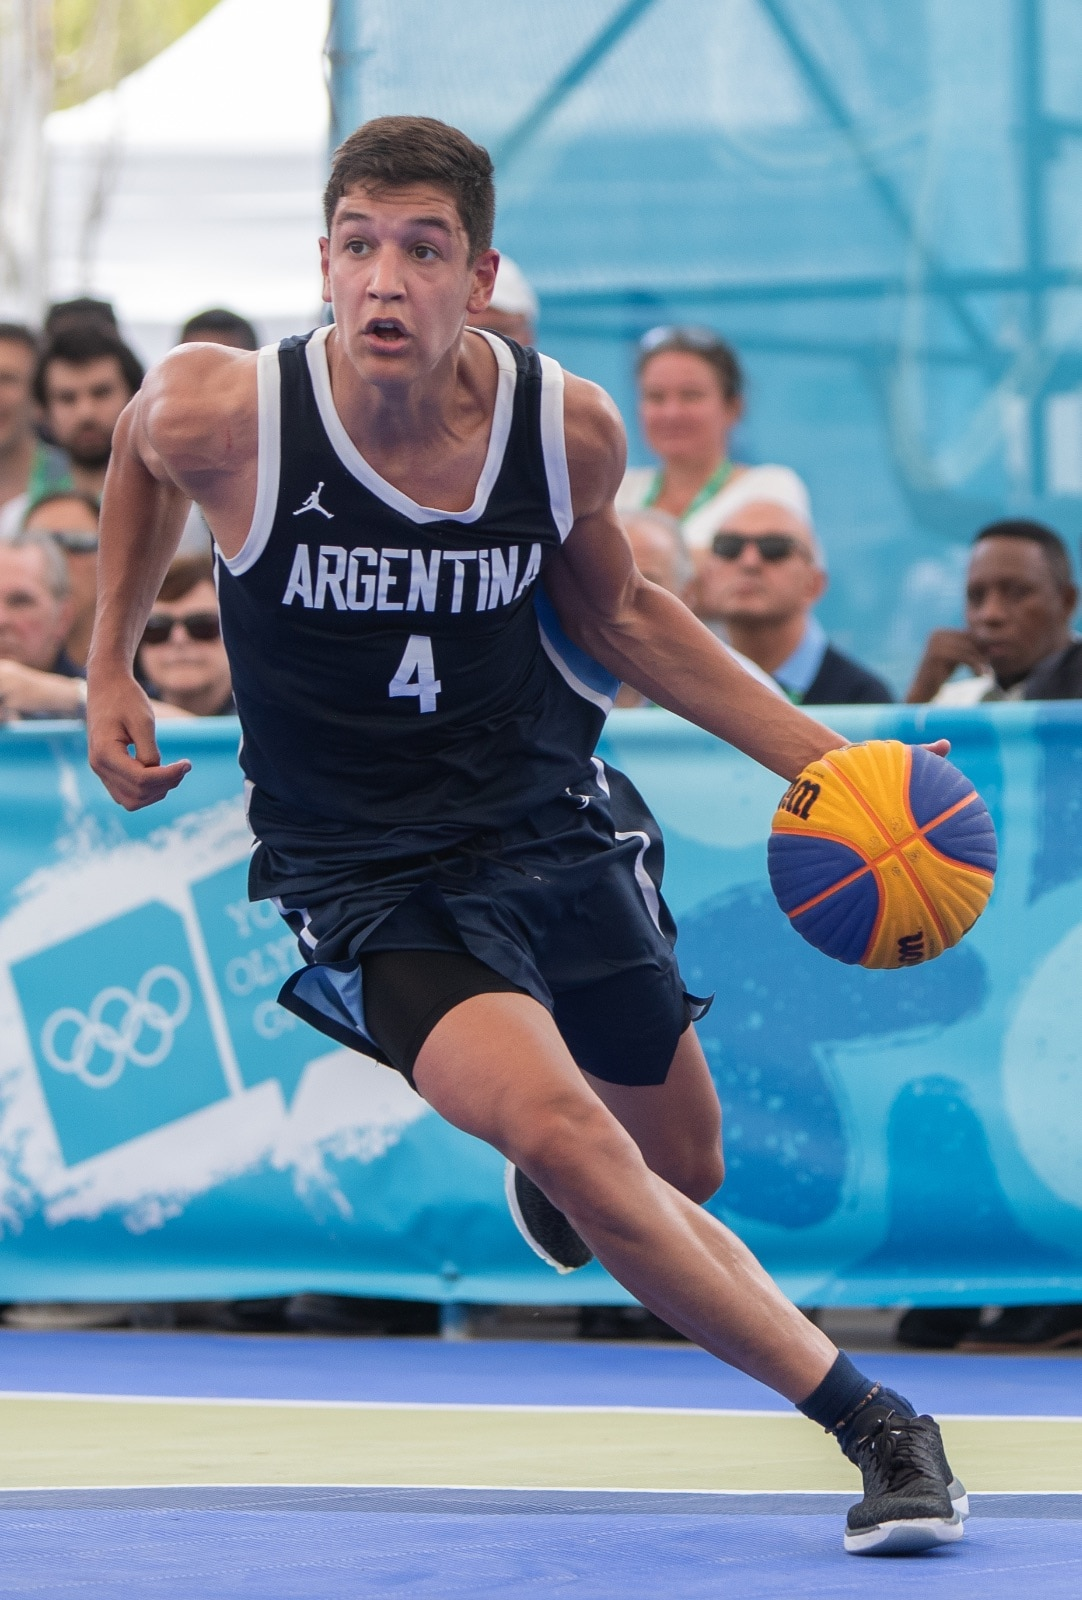 Buenos Aires 2018 - Basketball 3x3 - Men's Tournament